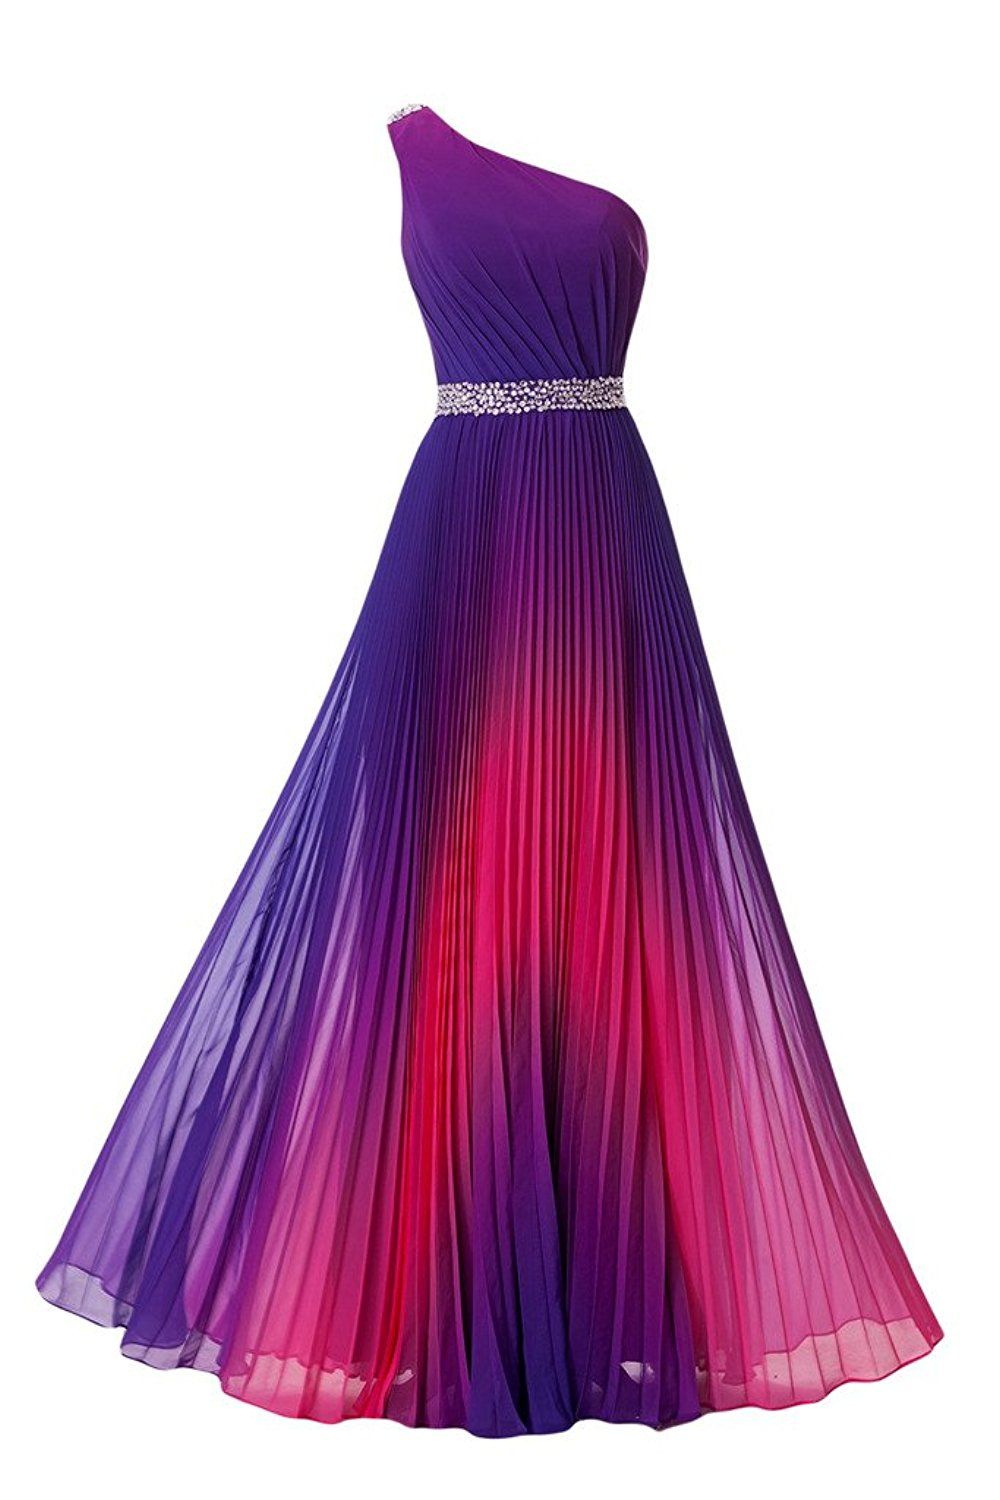 missdressy women's chiffon a-line evening dress one-shoulder